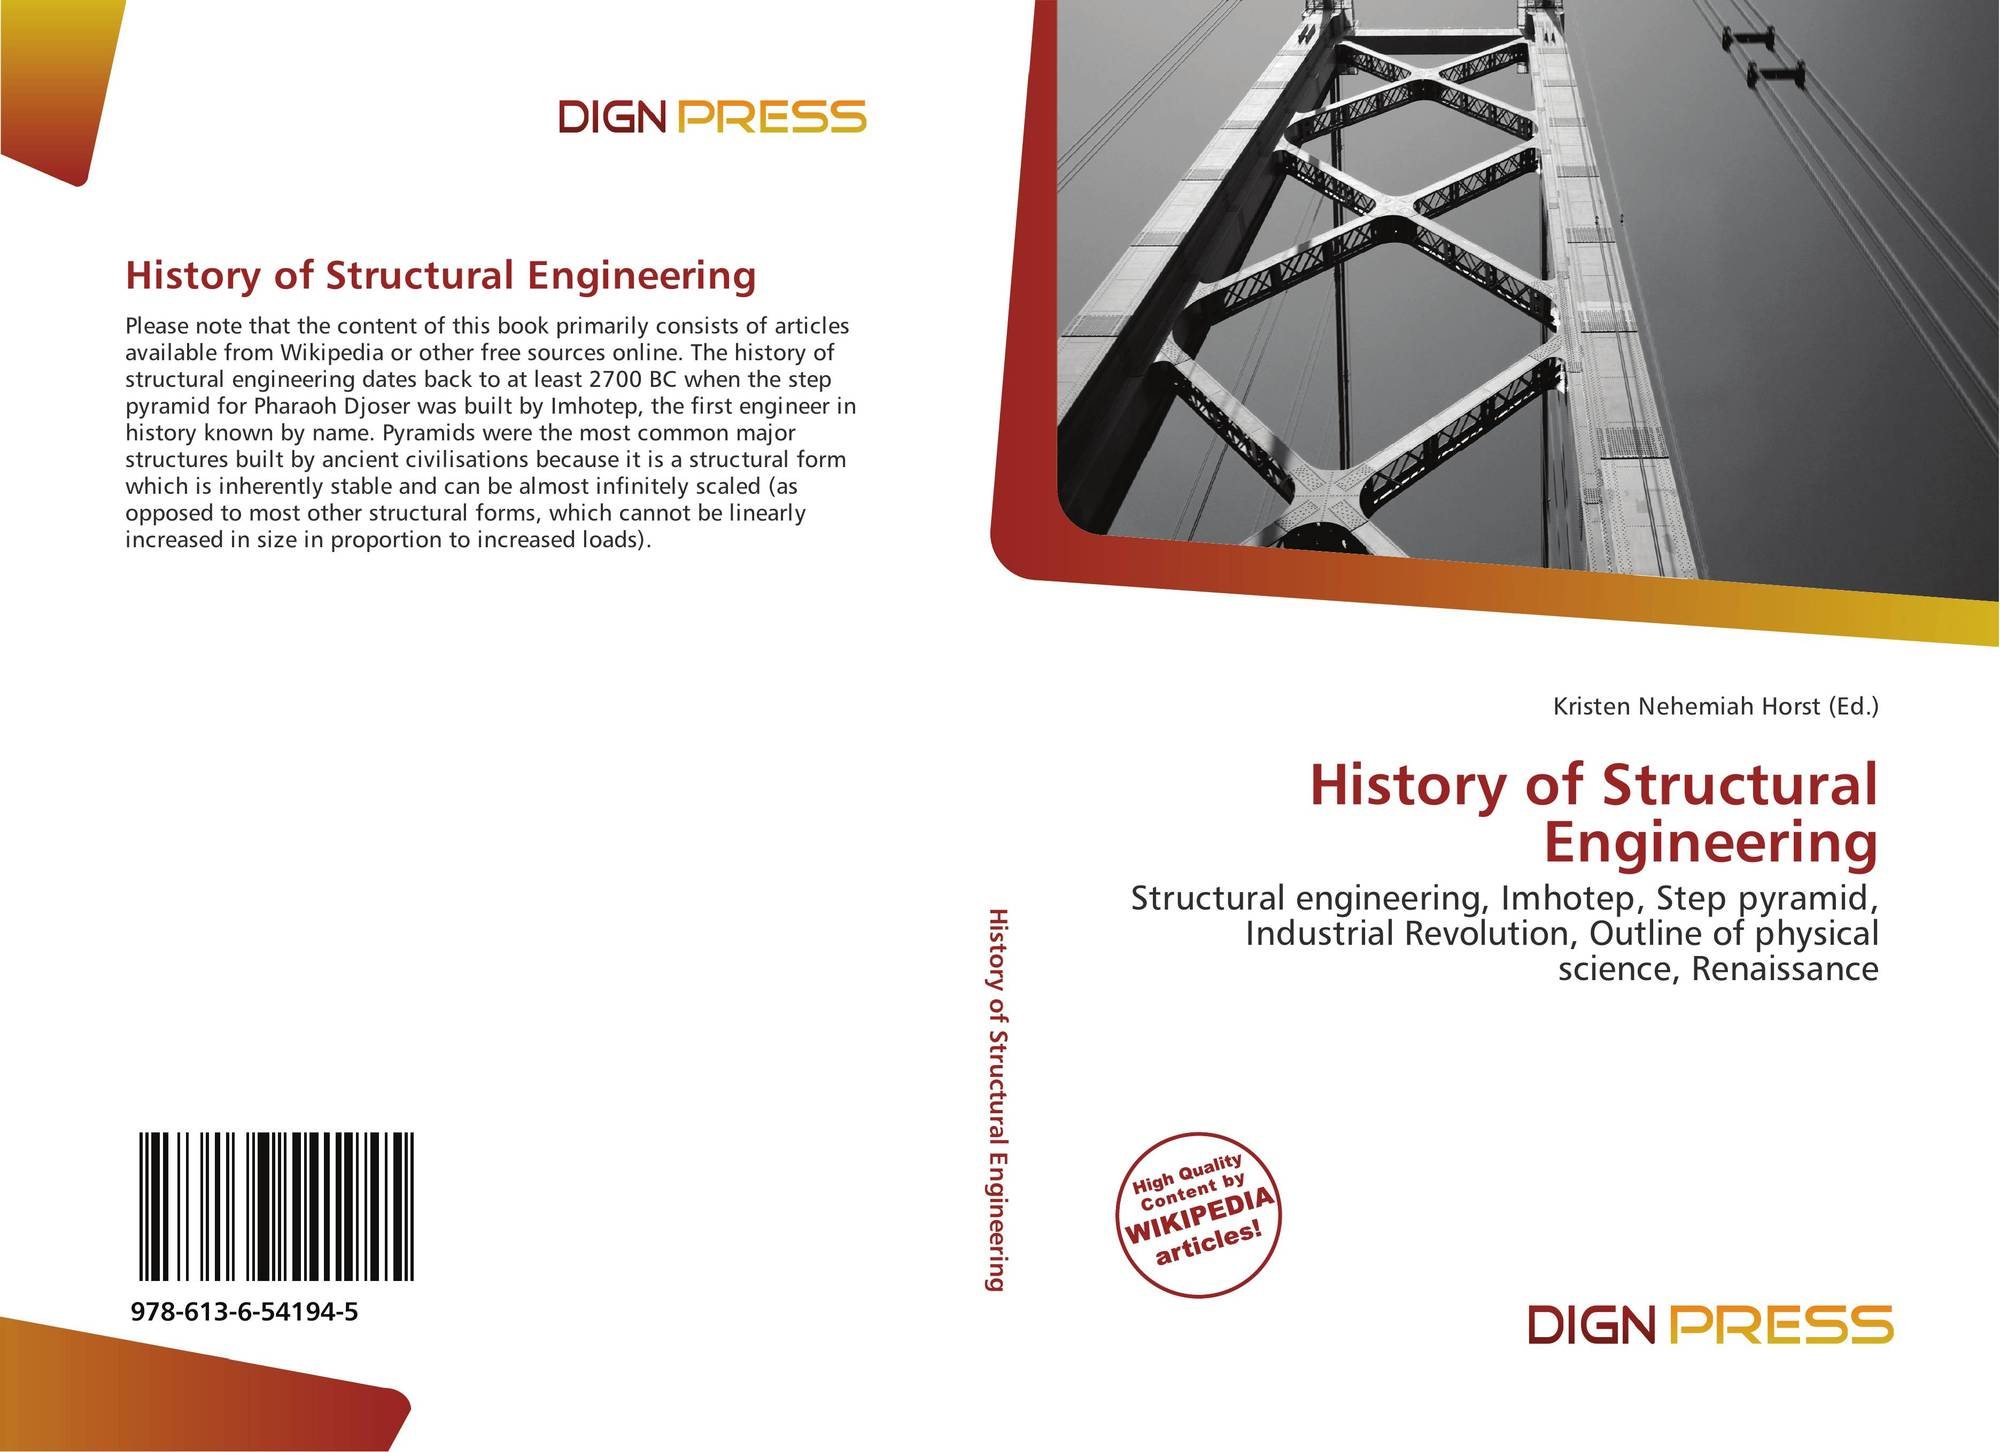 the history of structural engineering dates Famu-fsu college of engineering and the jim moran school of entrepreneurship foster innovation at innoventure weekend pamidi tapped to chair department of electrical and computer engineering professors win $17m nih.